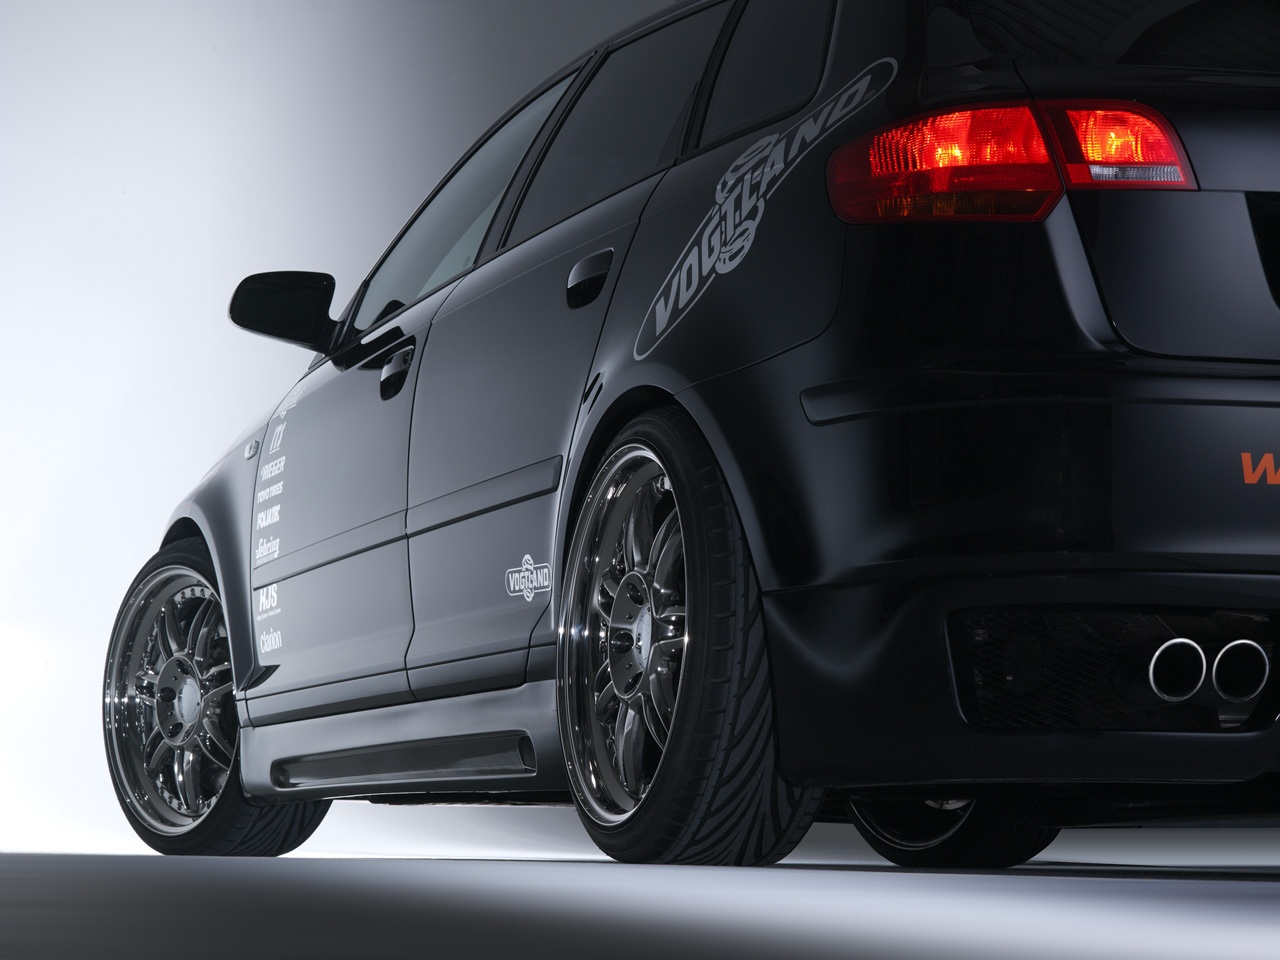 Audi images Audi A3 HD wallpaper and background photos 40229551 1280x960